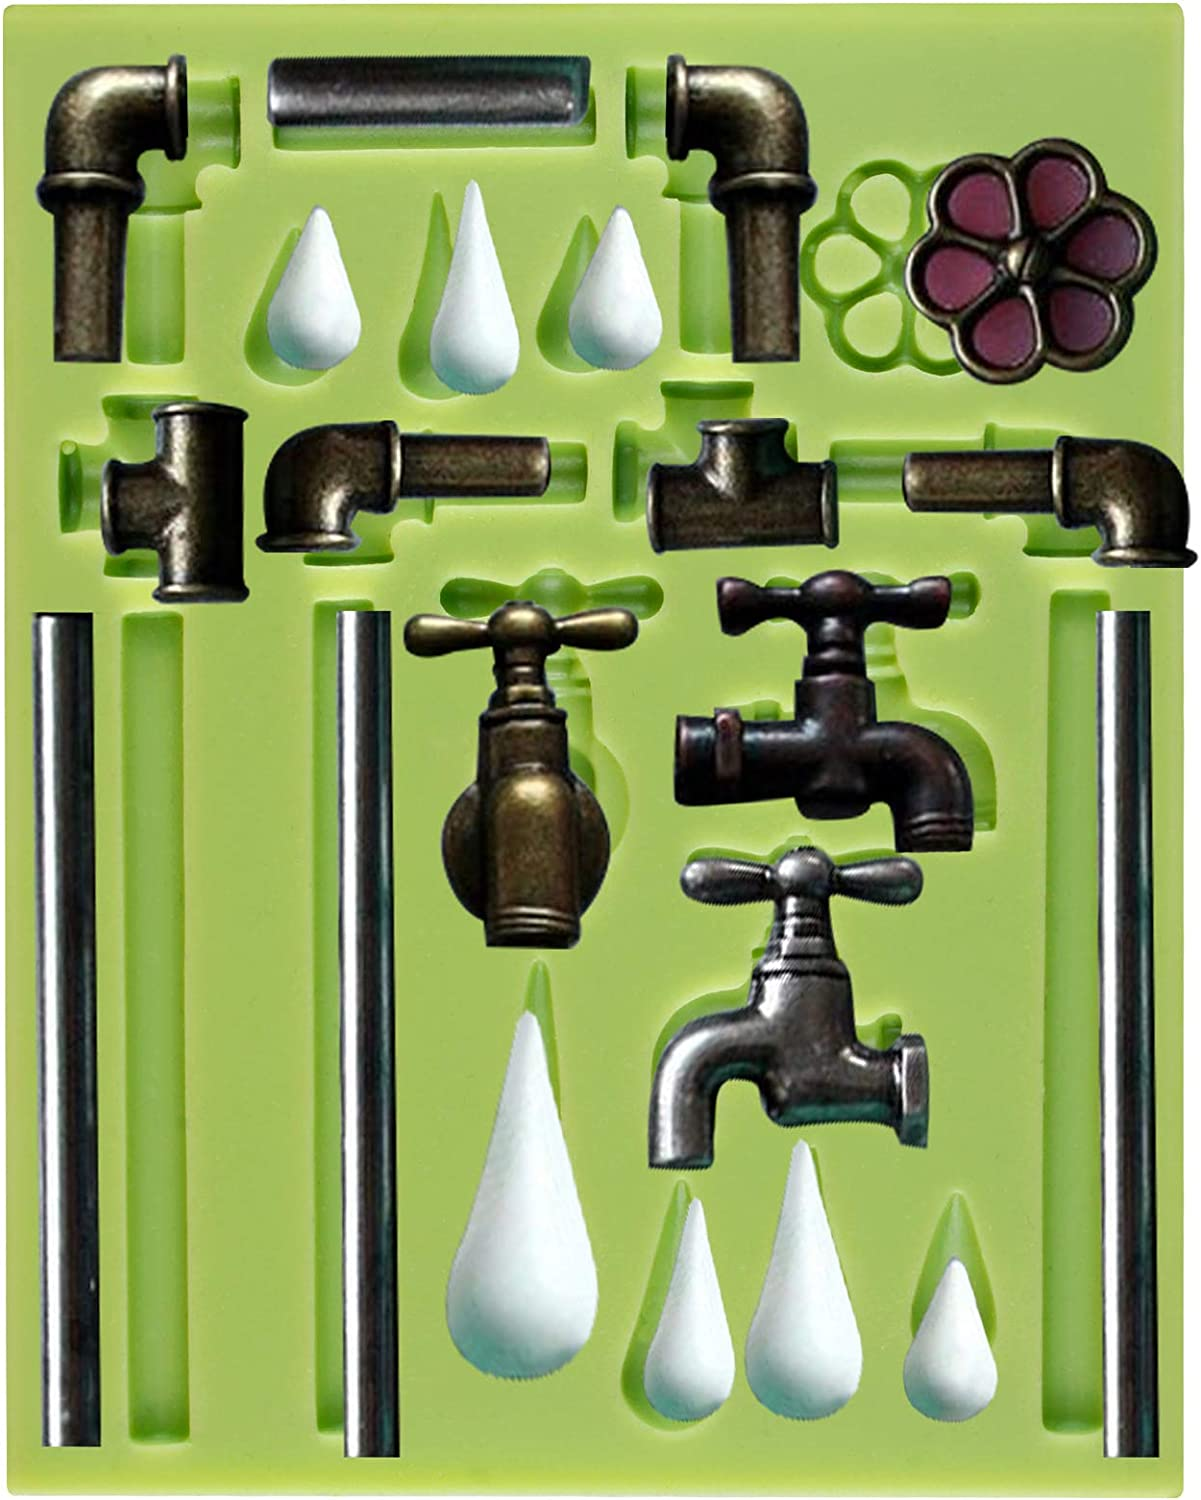 FUNSHOWCASE Steampunk Style Plumbing Pipe and Faucet Fondant Silicone Mold Cake Decoration Clay Crafting